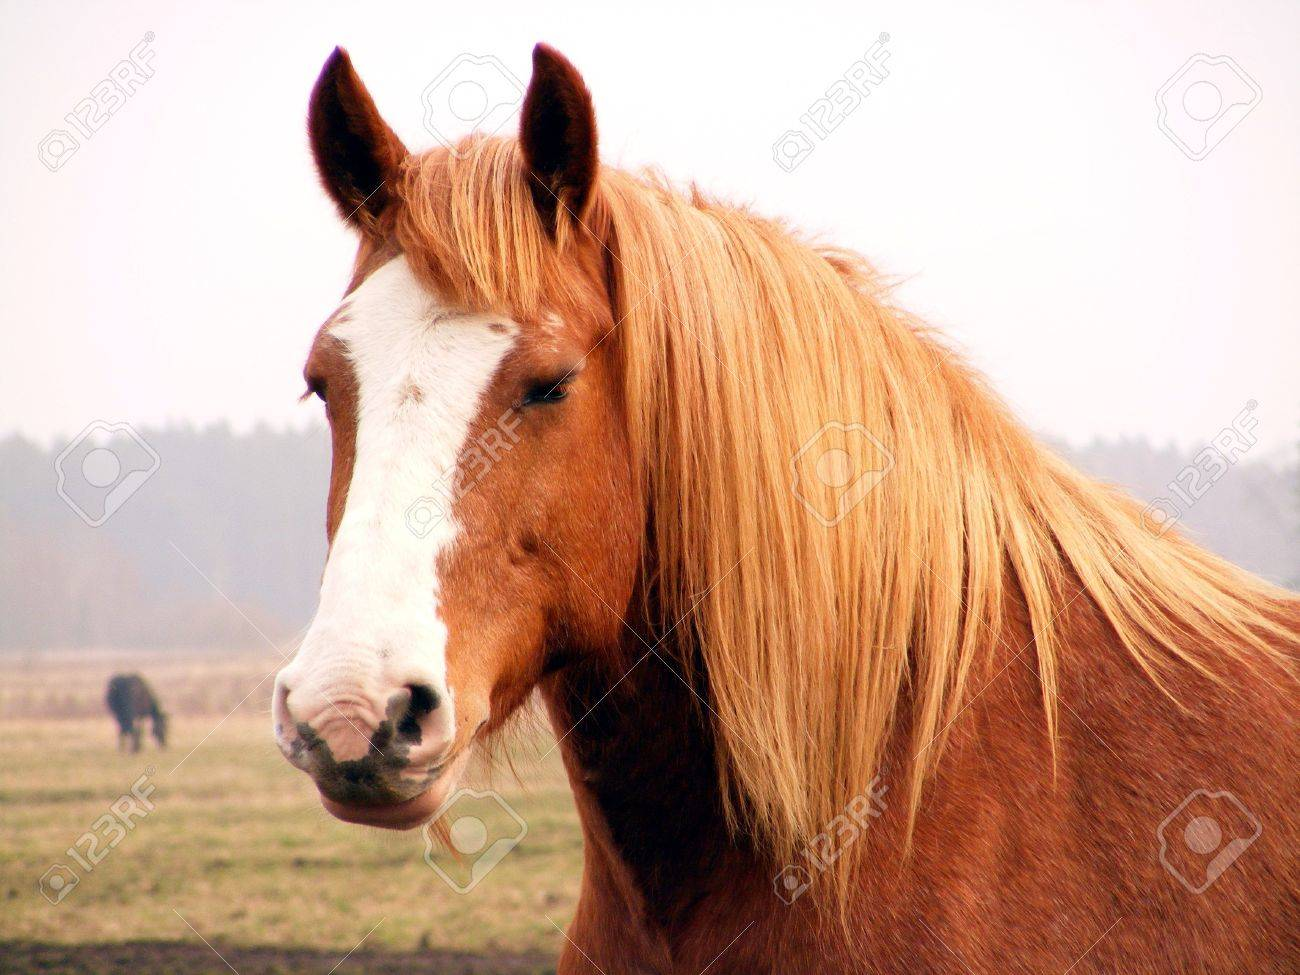 Palomino Draft Horse Portrait Stock Photo Picture And Royalty Free Image Image 14258248